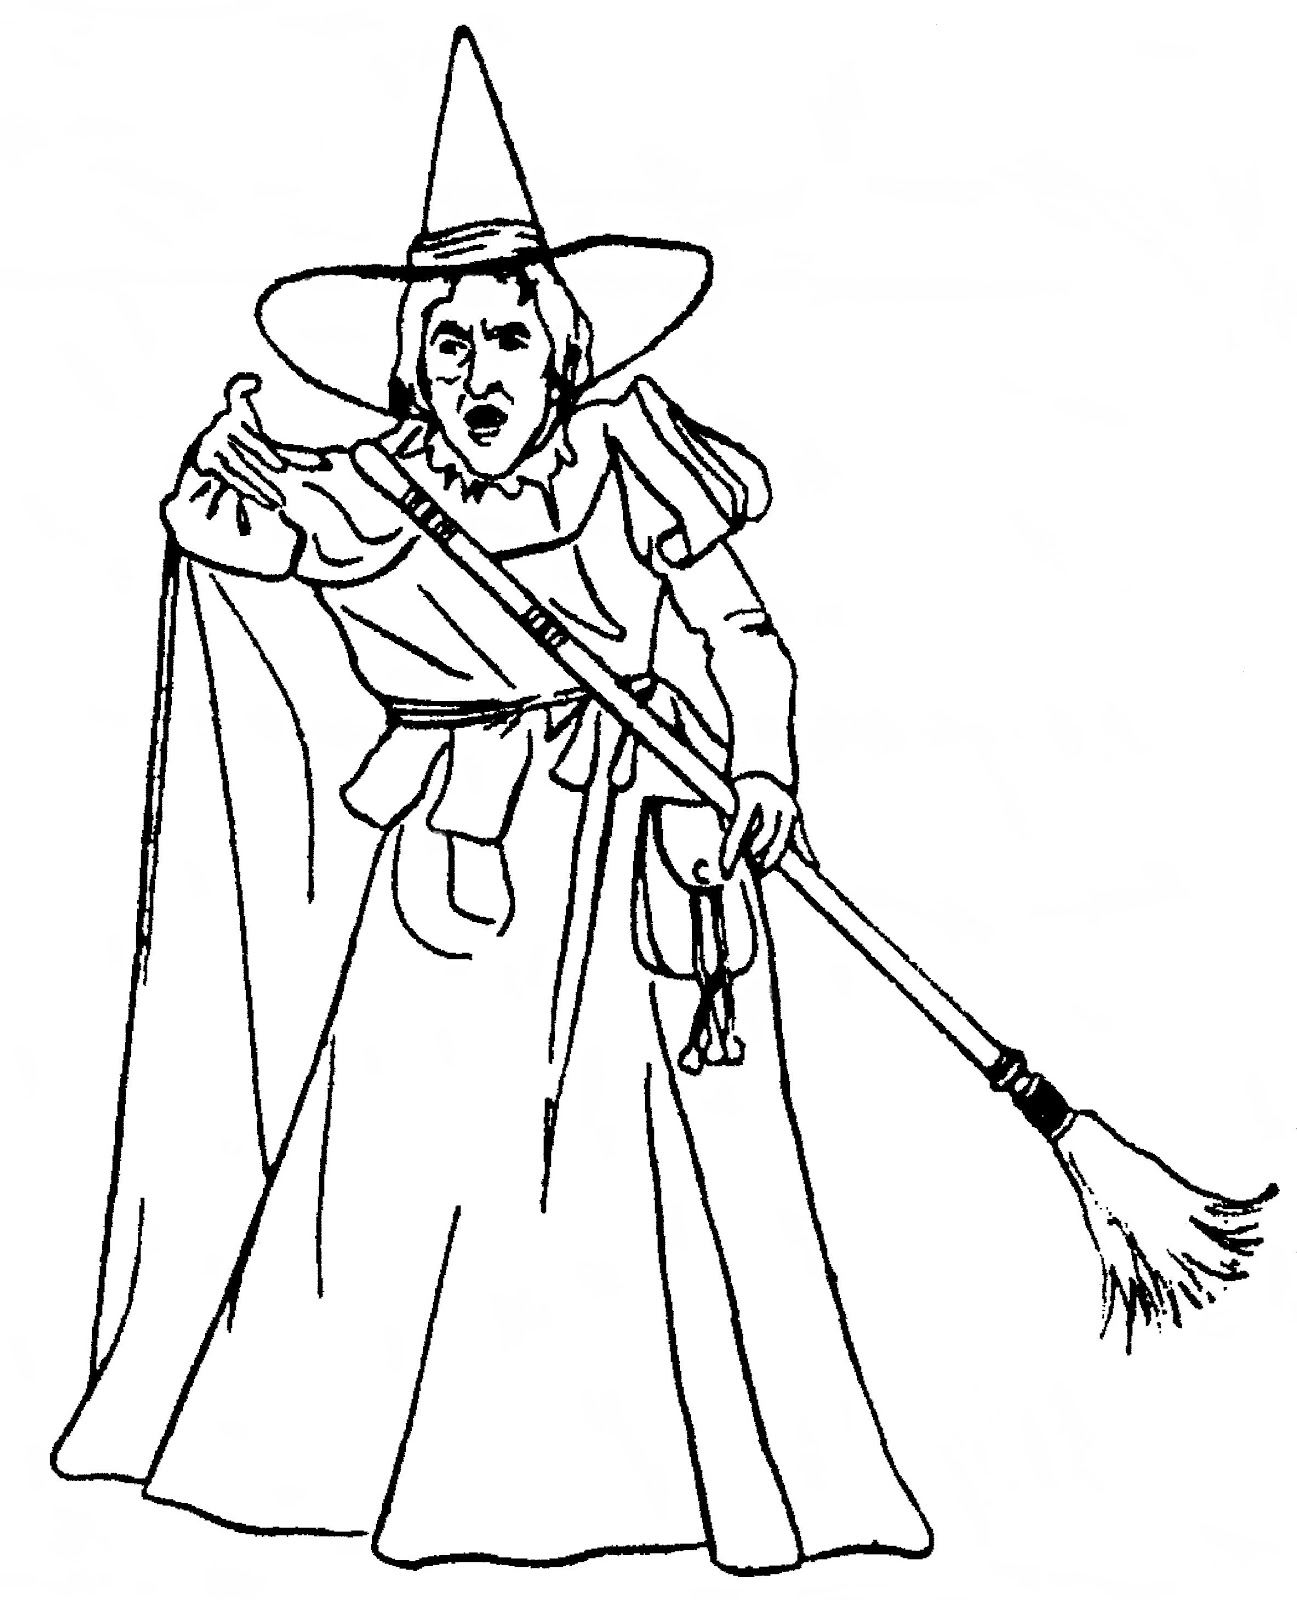 Printable Witch Coloring Pages Coloring Me The Wizard Of Oz Coloring Pages